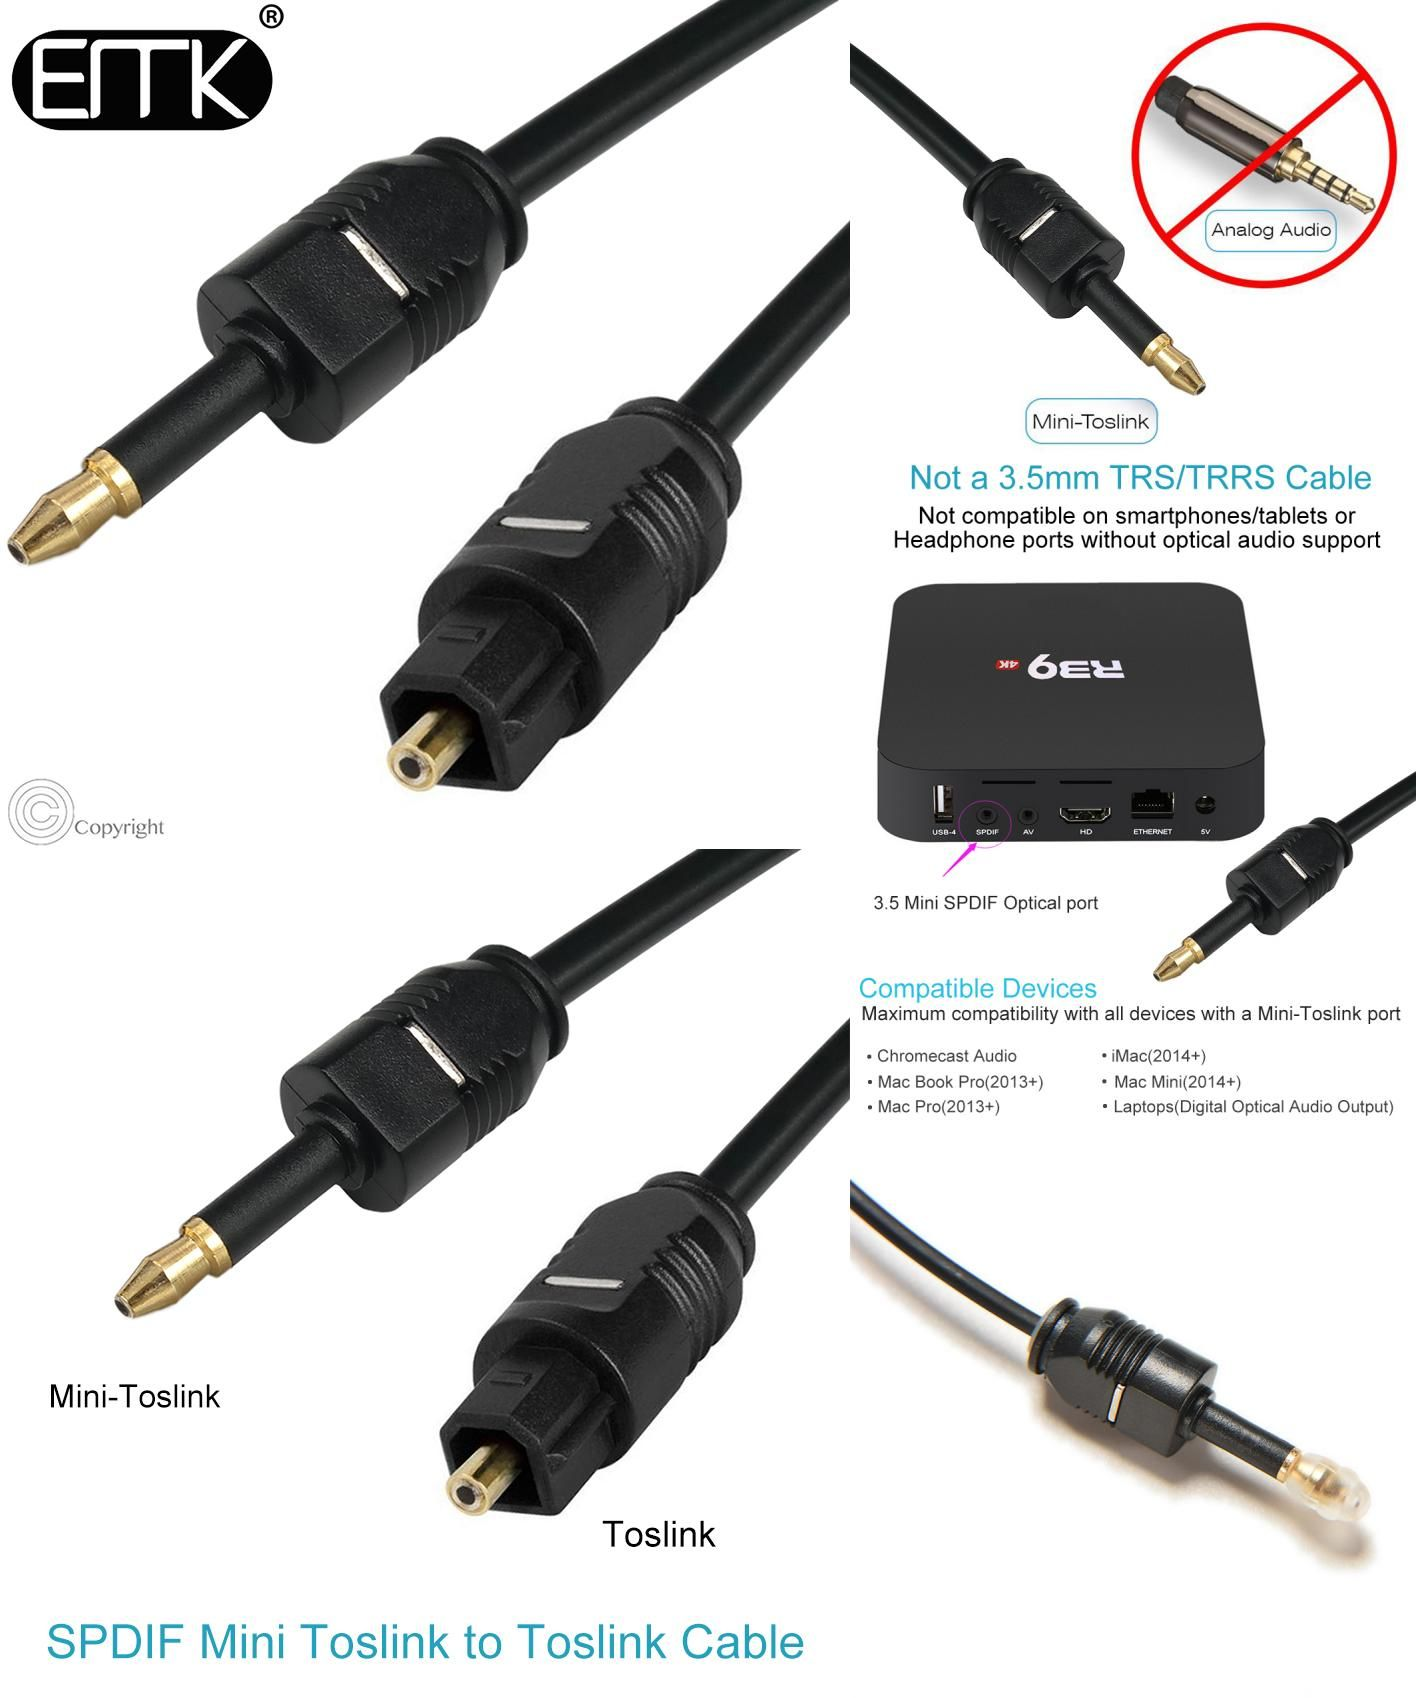 Visit To Buy Emk Digital Toslink To Mini Toslink Cable 3 5mm Spdif Optical Fiber Cable 3 5 To Optical Audio Cable Adapter For Audio Cable Digital Sound Cable